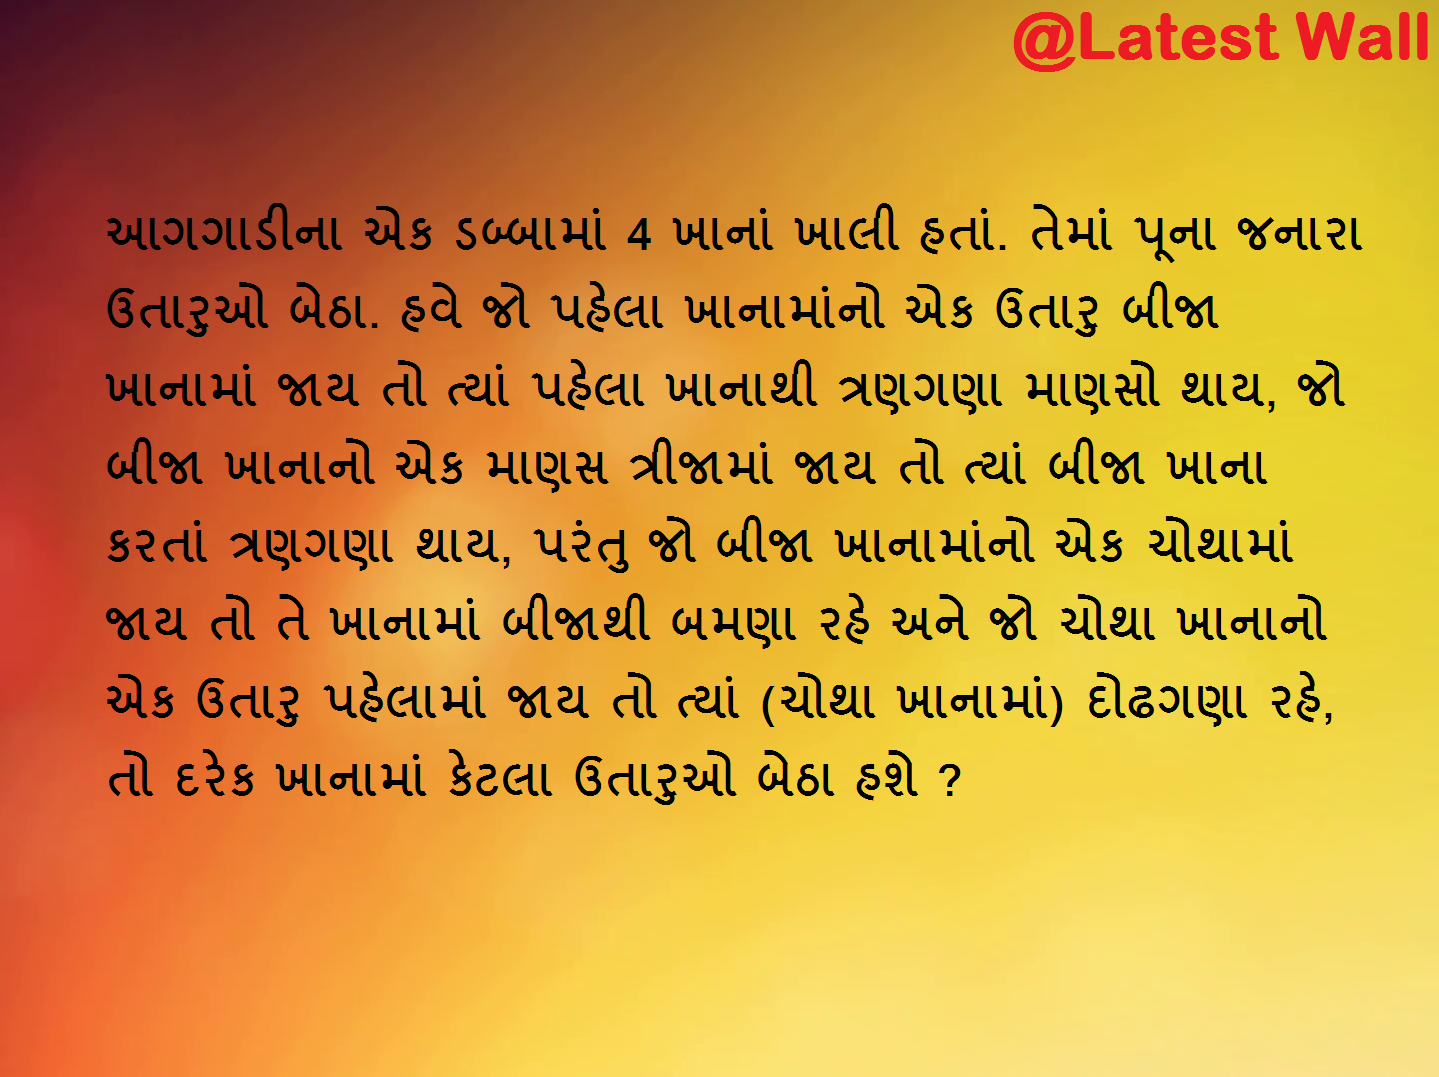 New Best Ukahan koyda in gujarati